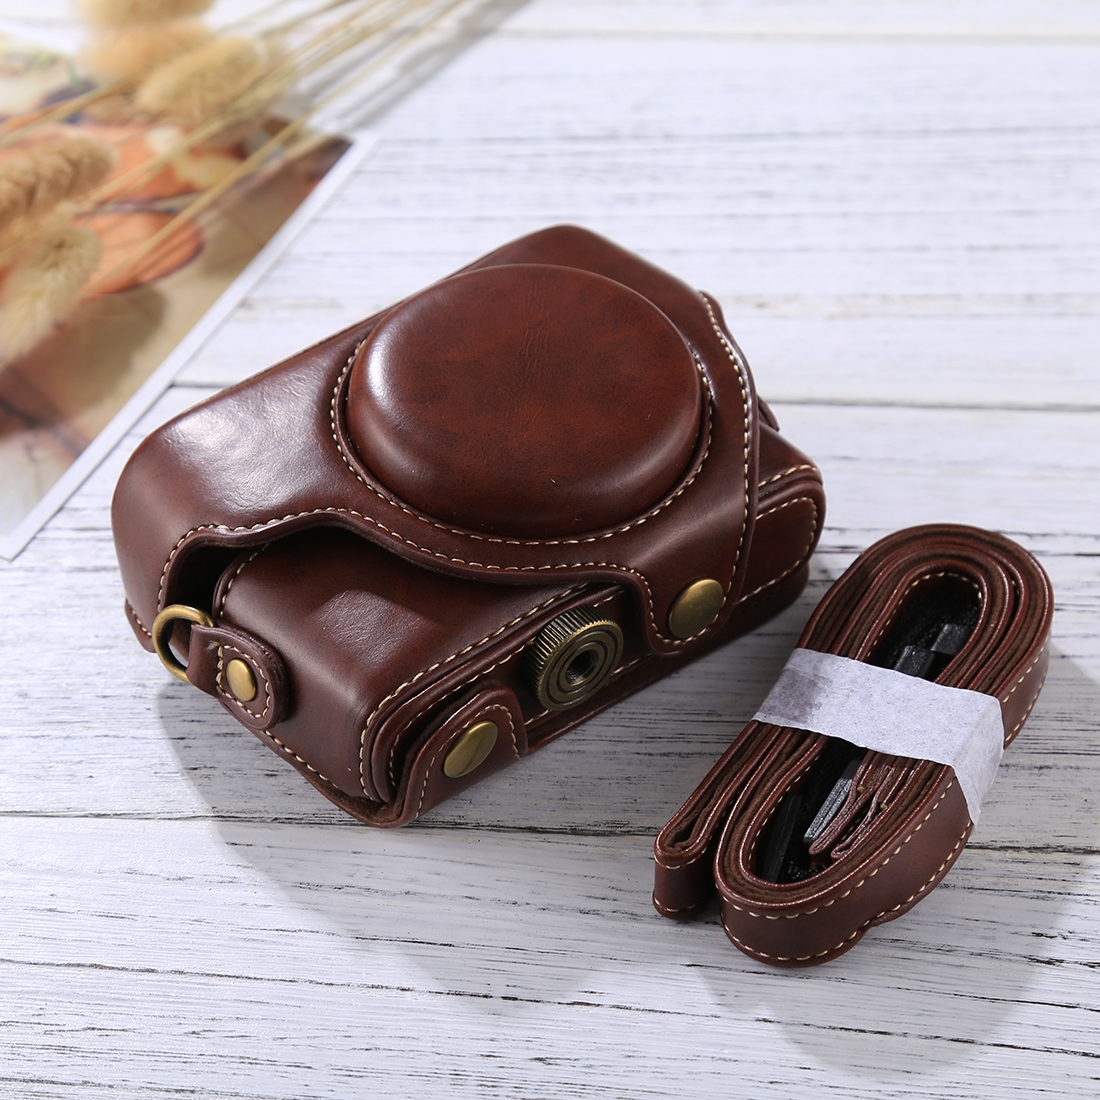 M4 MEETBM ZIMO,Retro Style PU Leather Camera Case Bag with Strap for Sony RX100 M3 Black Color : Coffee M5